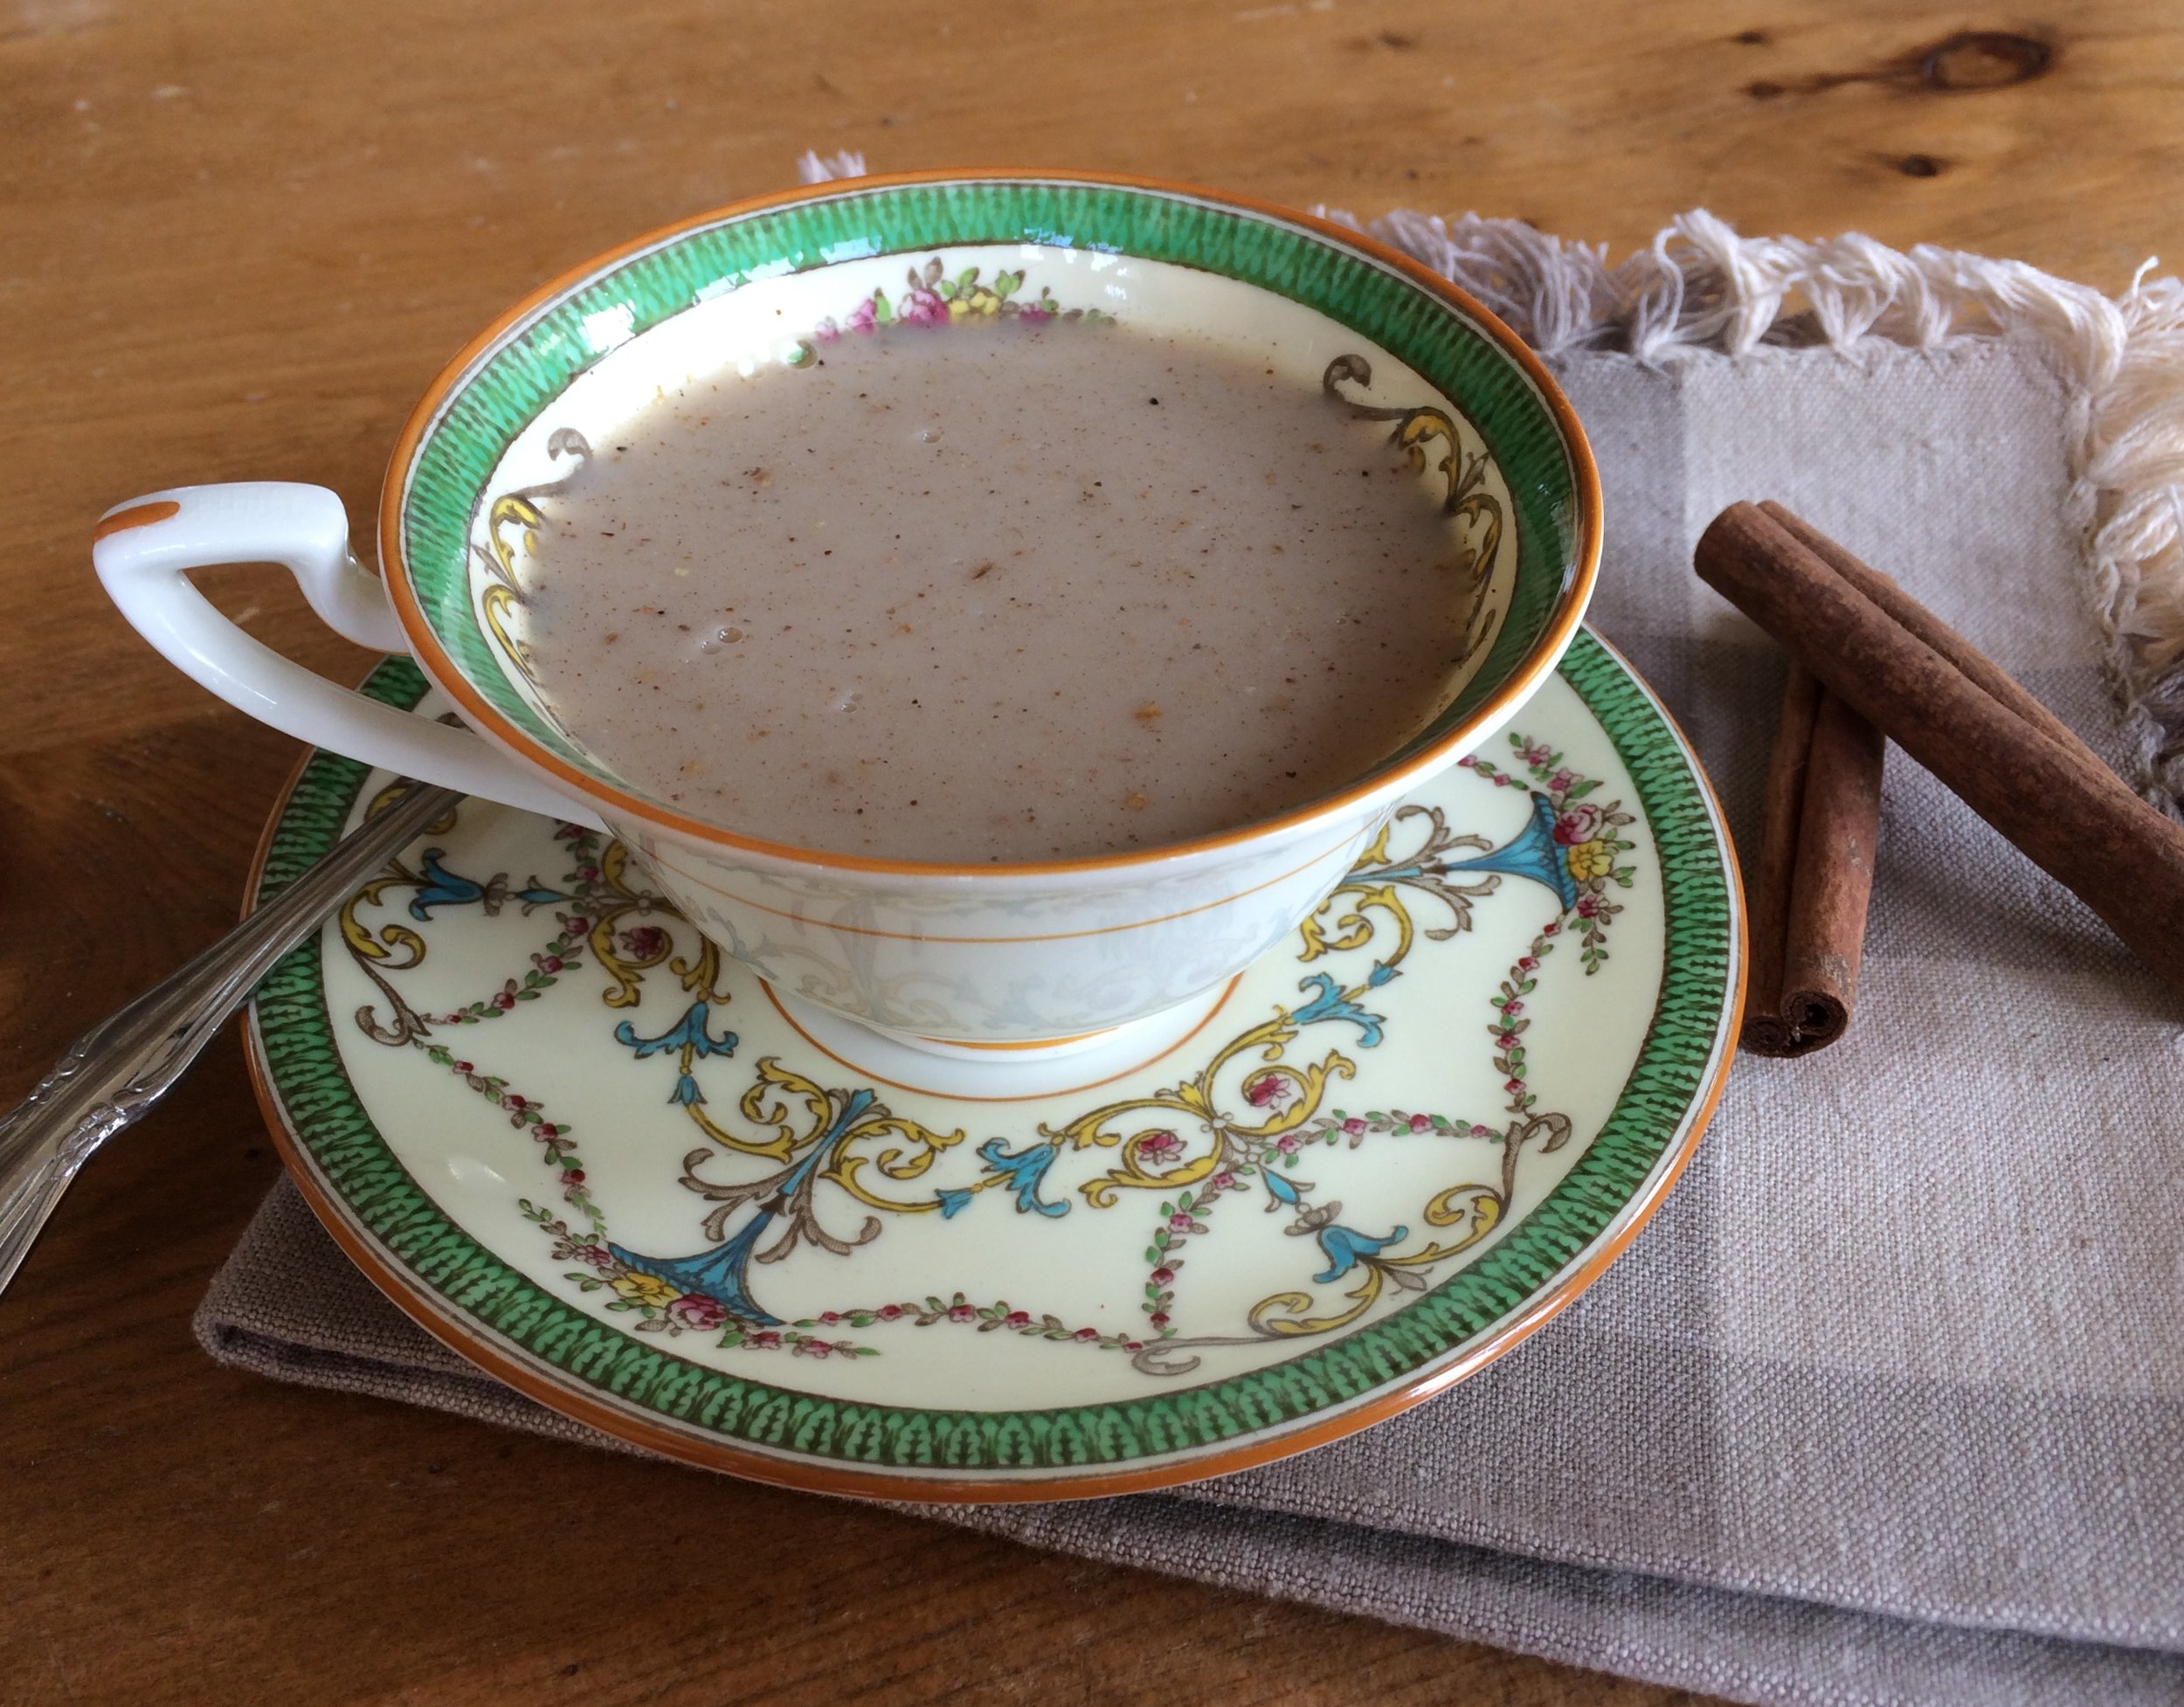 Be creative. For a Chai Tea version, replace the cacao powder in the Chocolate Panna Cotta with 1 teaspoon of chai spice blend. This is my daughter's favourite. Use spices you tolerate to create your own blend.